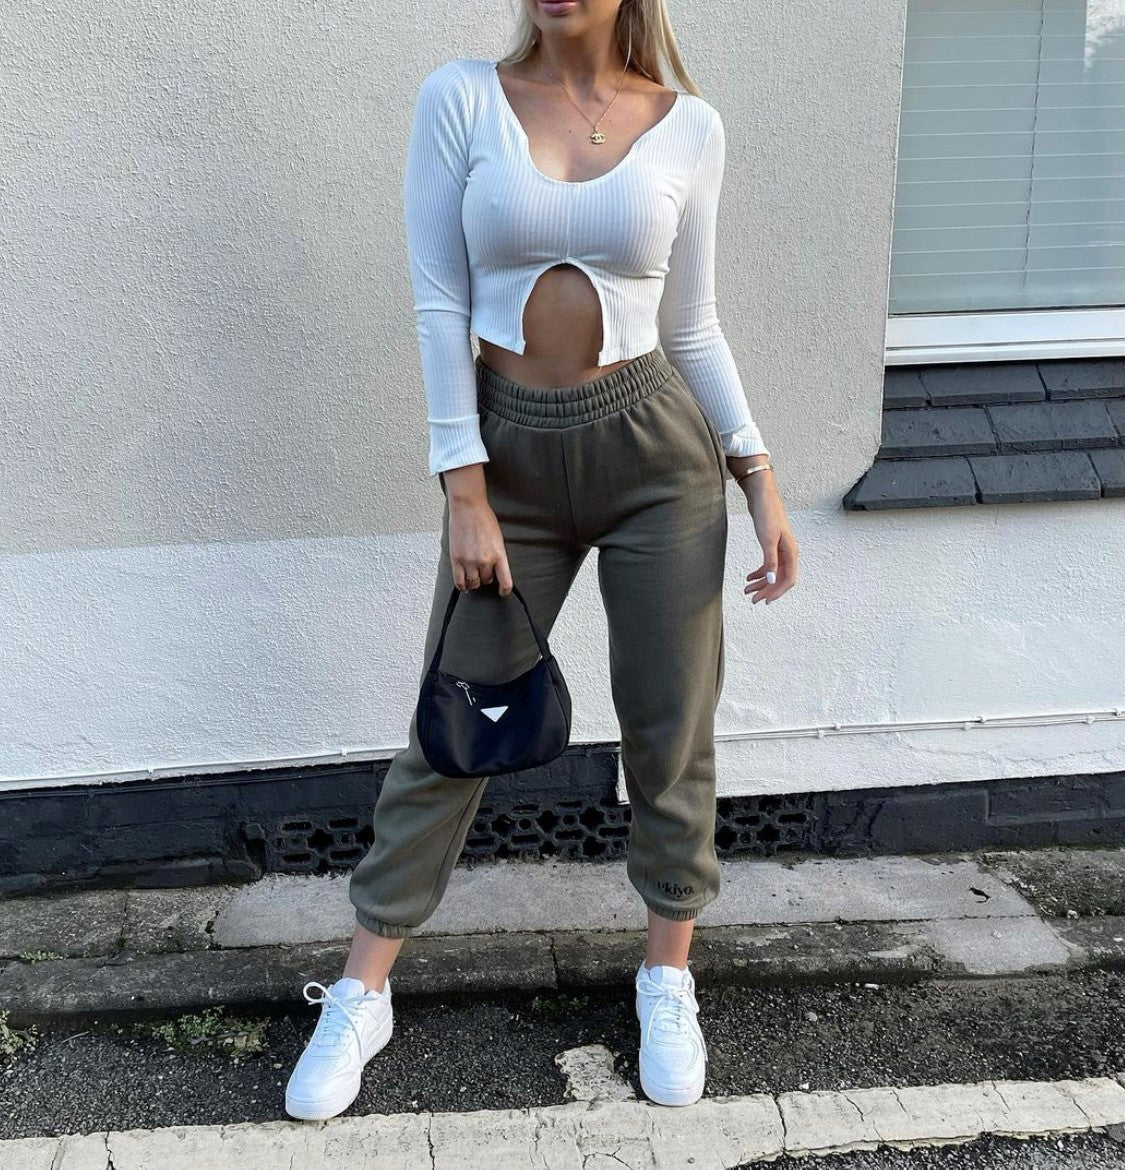 Shoulder-down photograph of influencer wearing our Ukiyo Frosted Olive Joggers and Off White Split Front Long Sleeve Crop Top paired with white trainers and a small black clutch bag